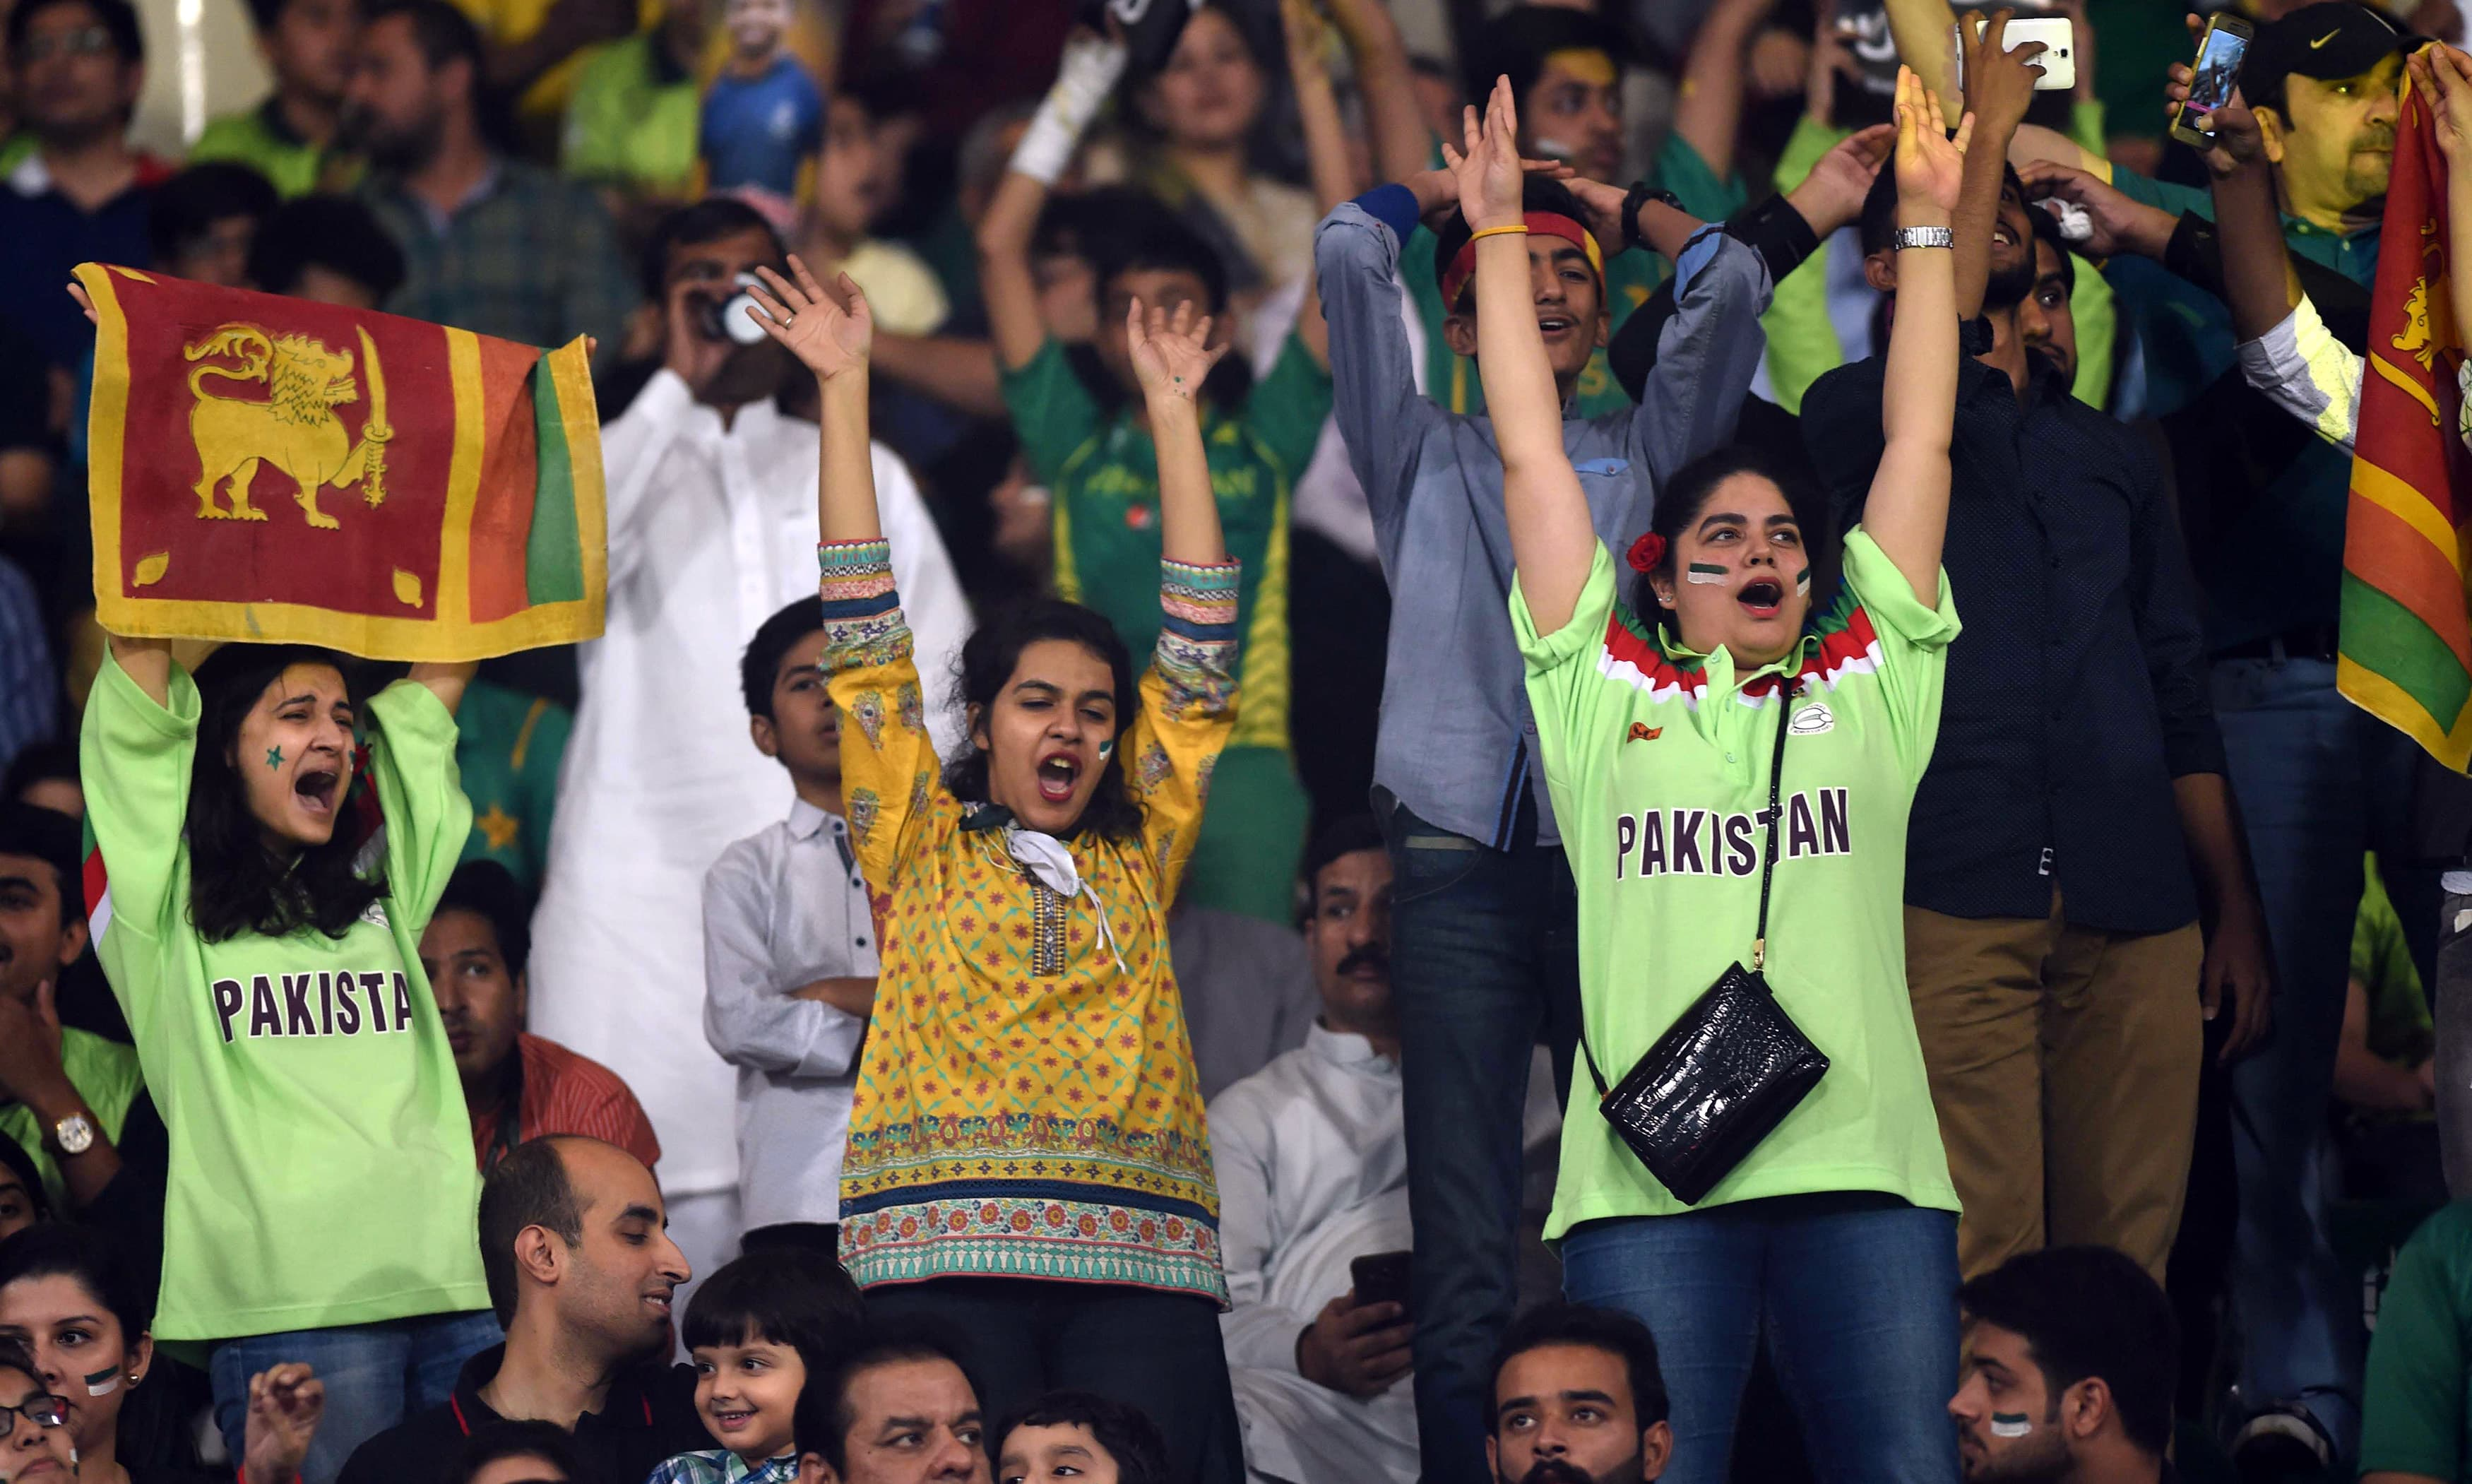 Spectators cheer during the T20 cricket match between Pakistan and Sri Lanka. —AFP